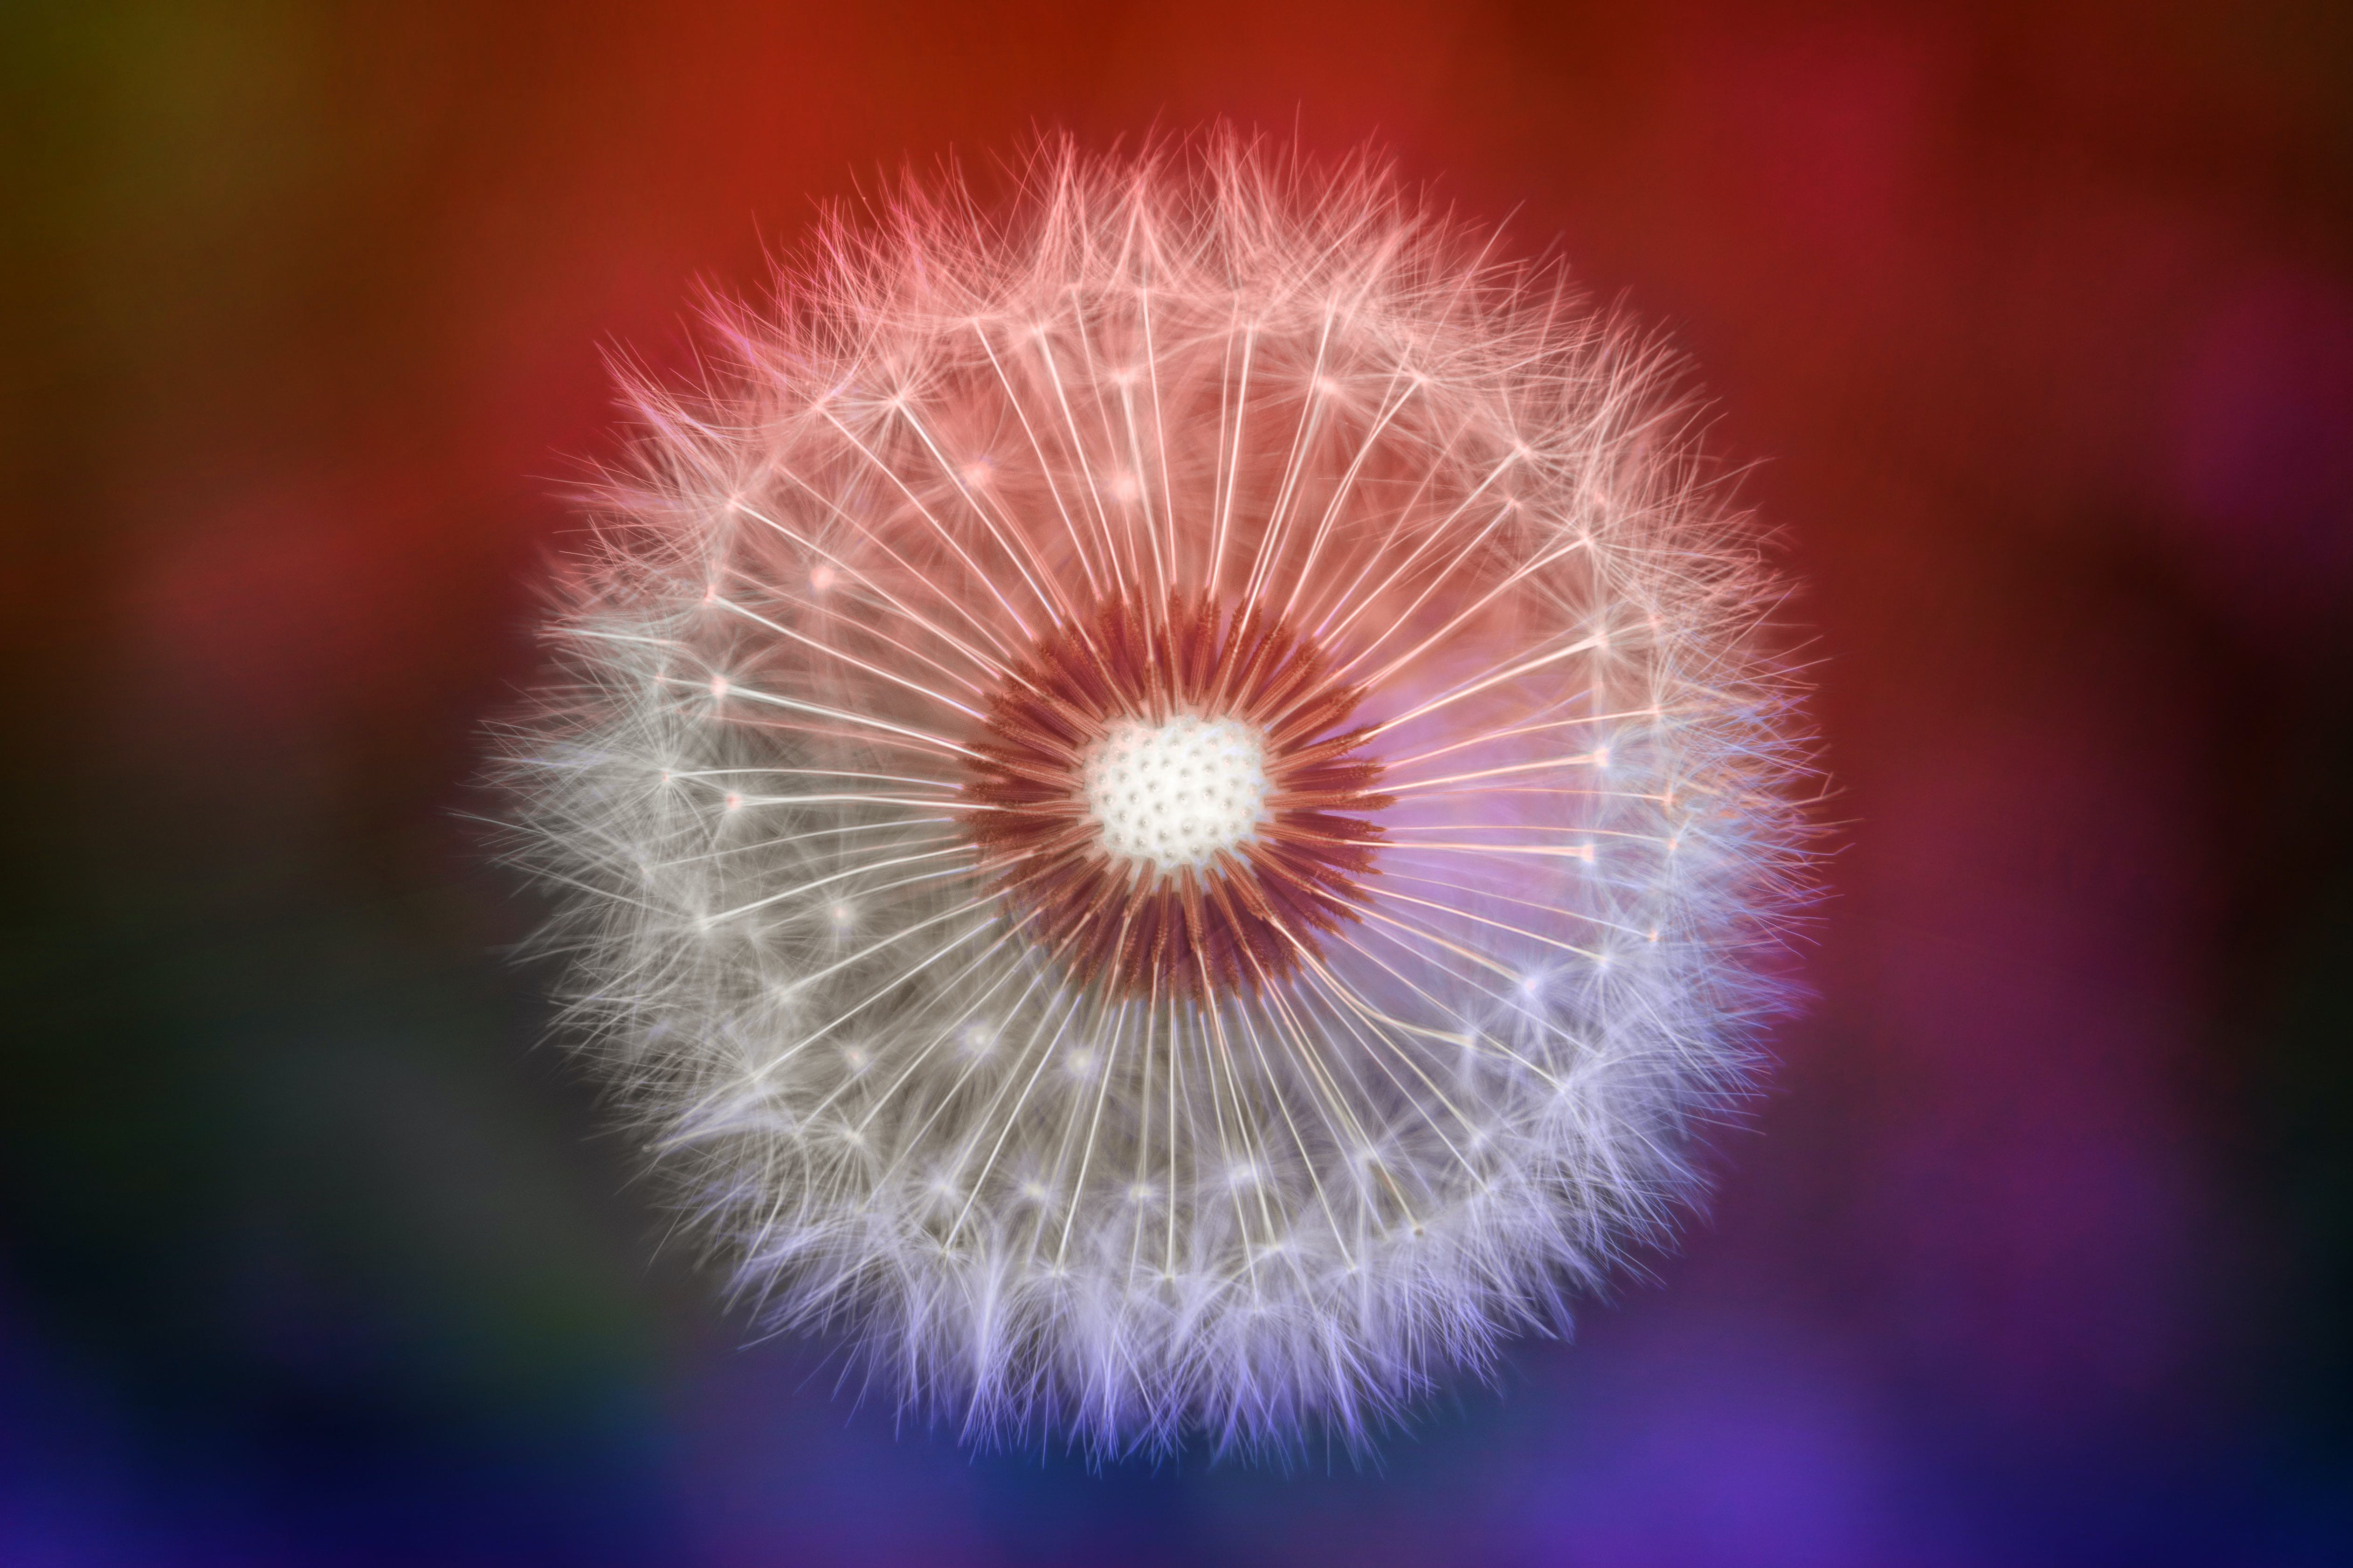 Close-up Photography of Dandelion